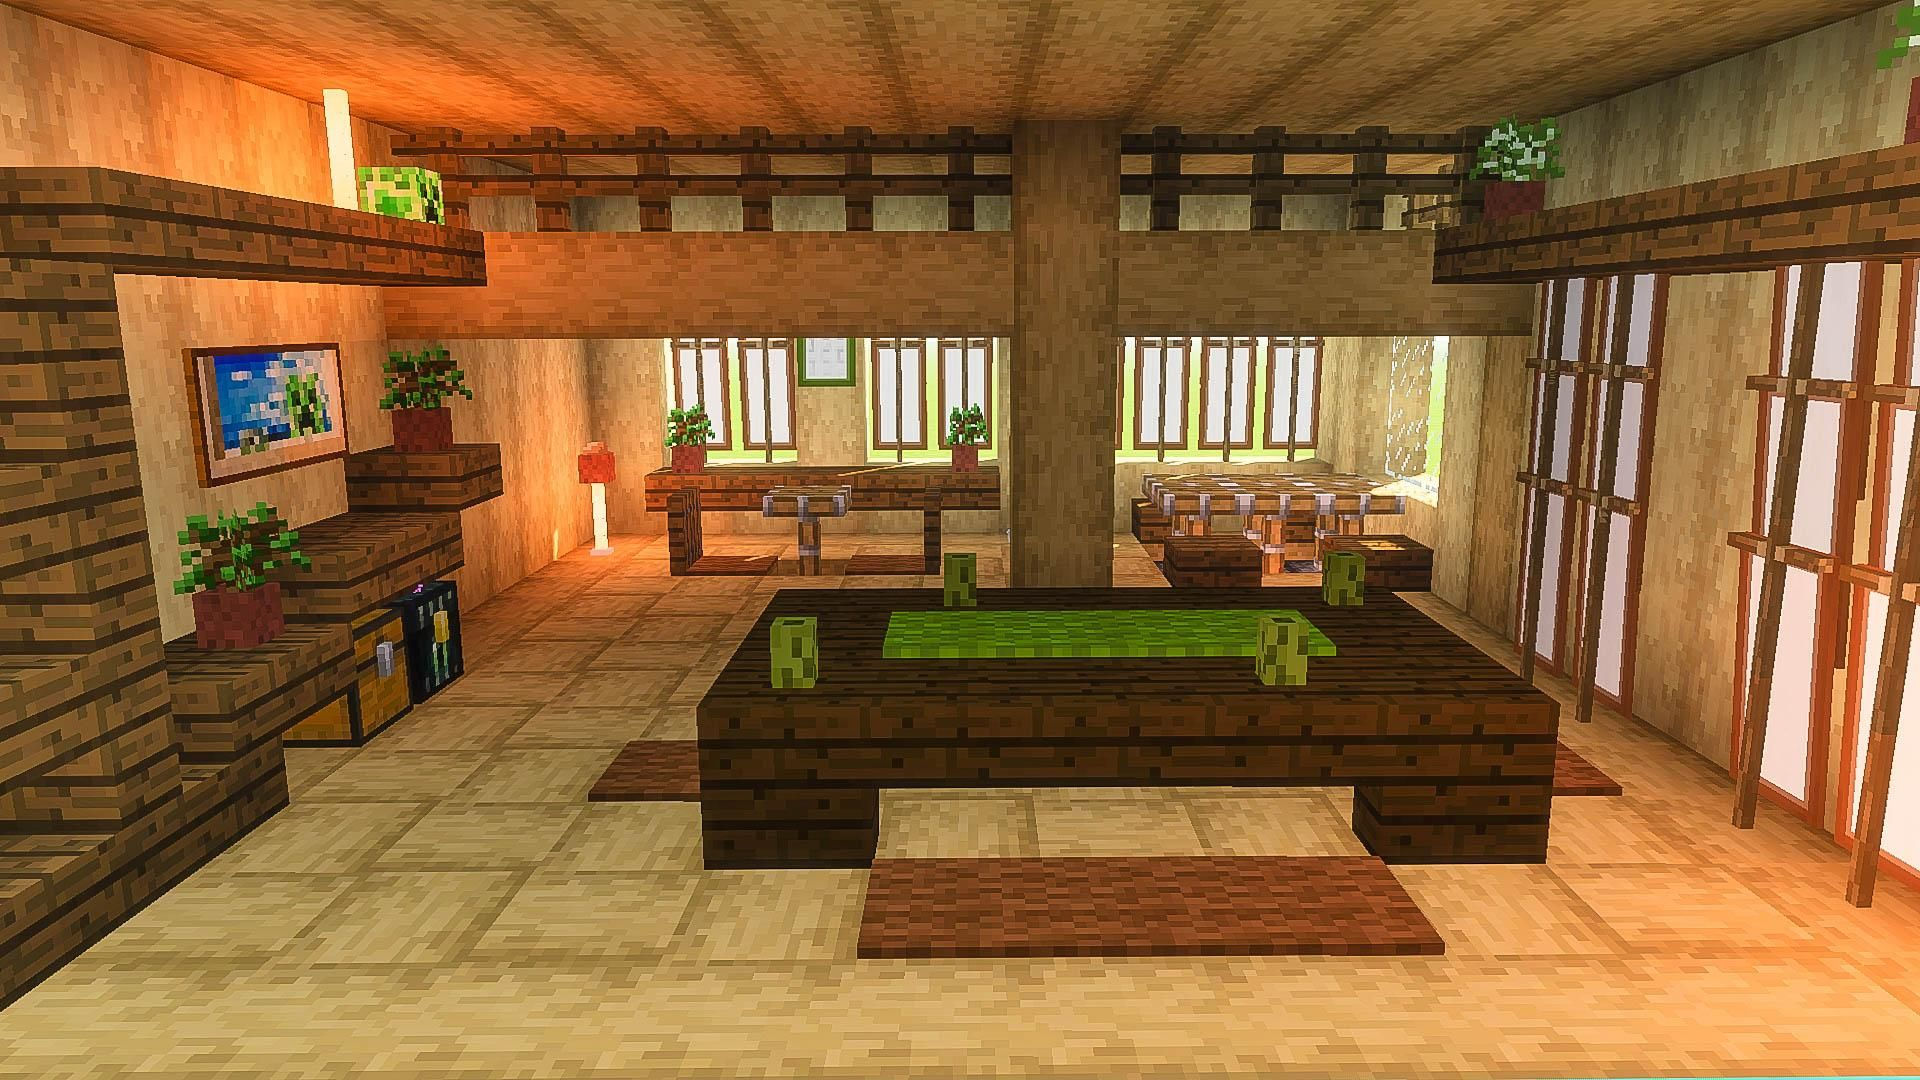 Japanese Inn Interior Minecraft Minecraft Houses Minecraft Japanese House Minecraft Room